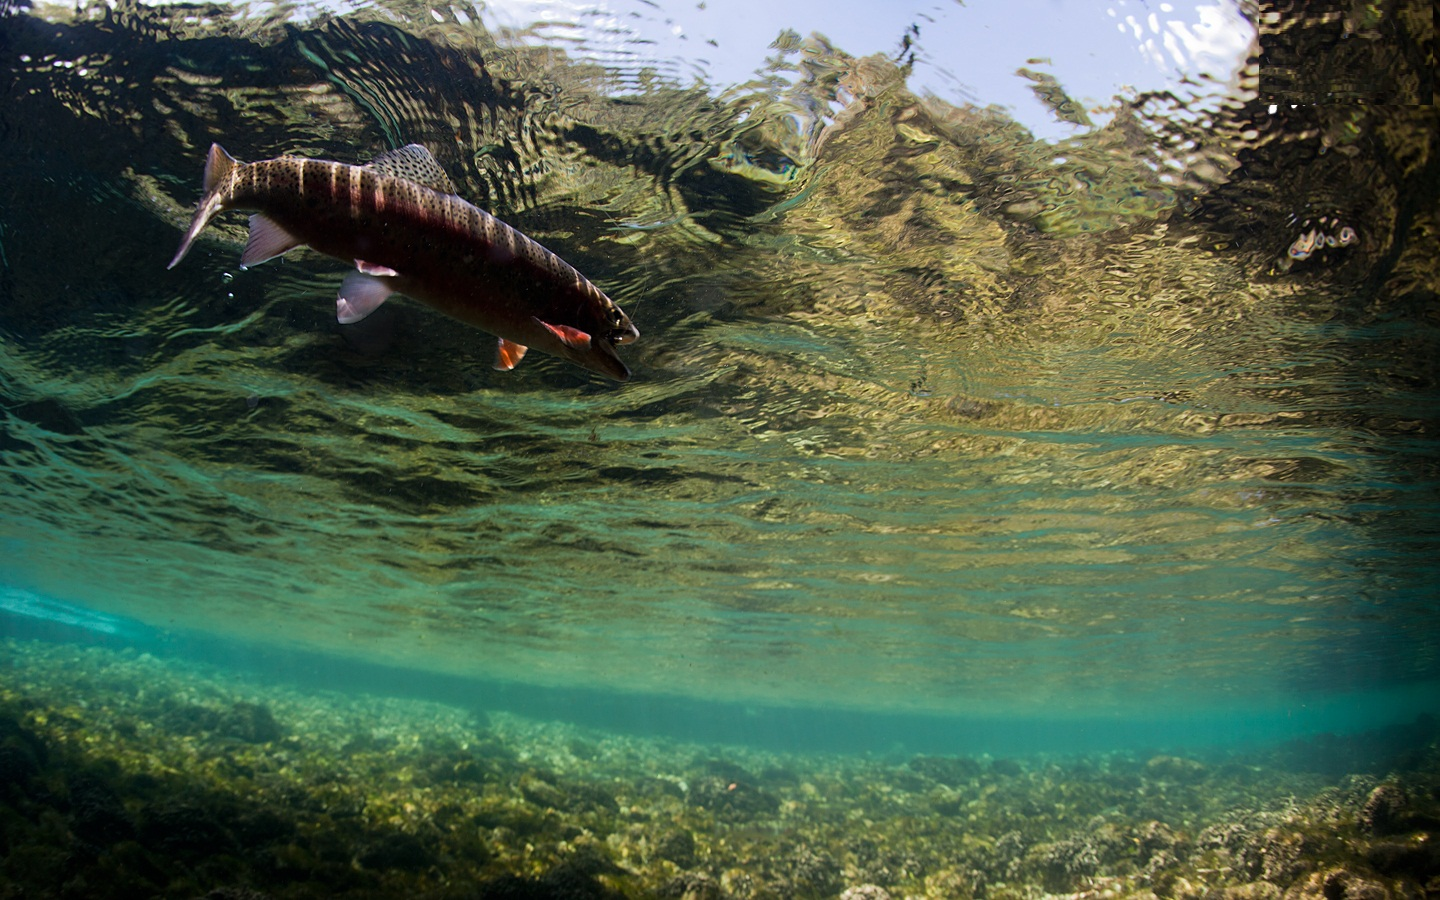 Awesome Fly Fishing wallpaper 1440x900 33115 1440x900